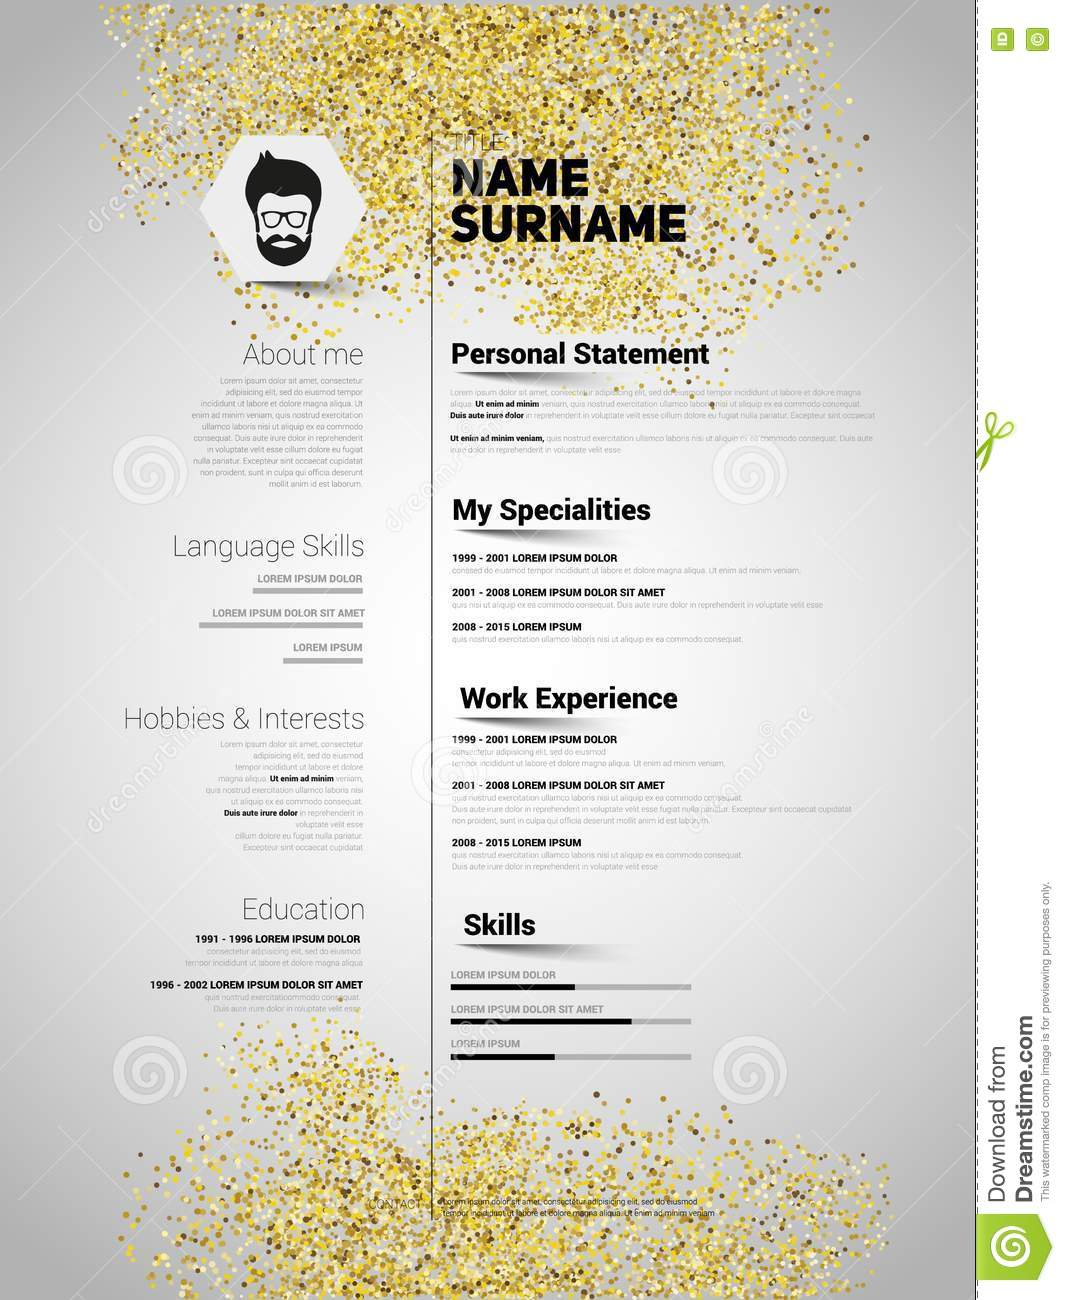 resume minimalist cv in gold glitter style  resume template with stock illustration